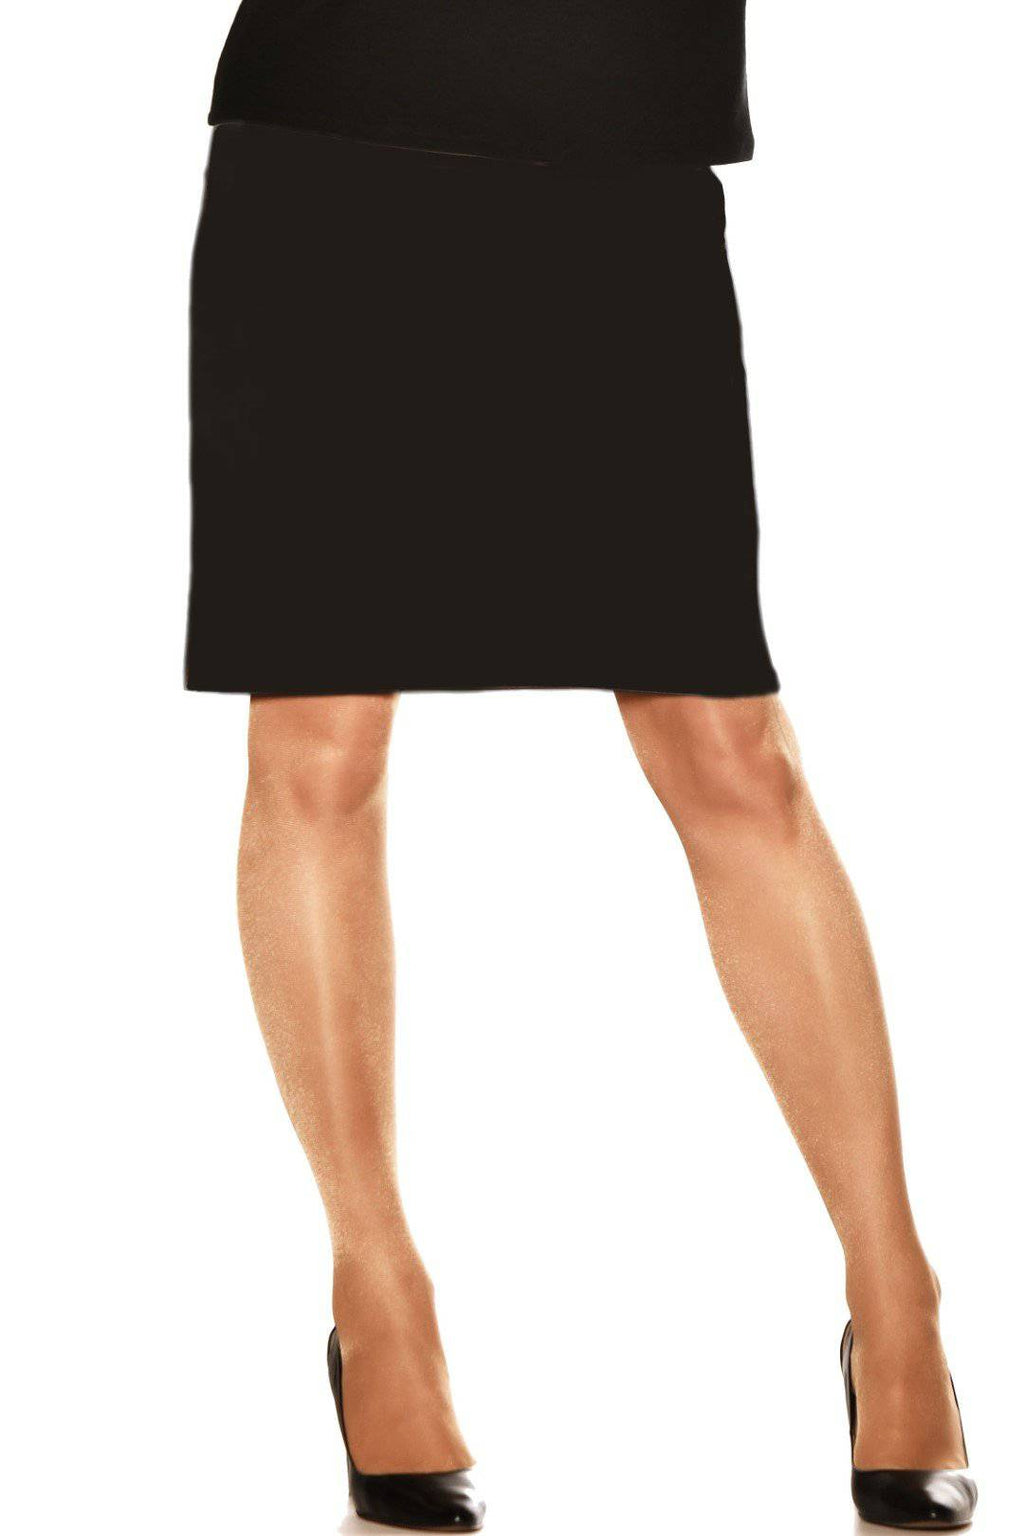 PAULA RYAN ESSENTIALS Fitted Skirt - Roma - Skirt - Paula Ryan Essentials - Paula Ryan